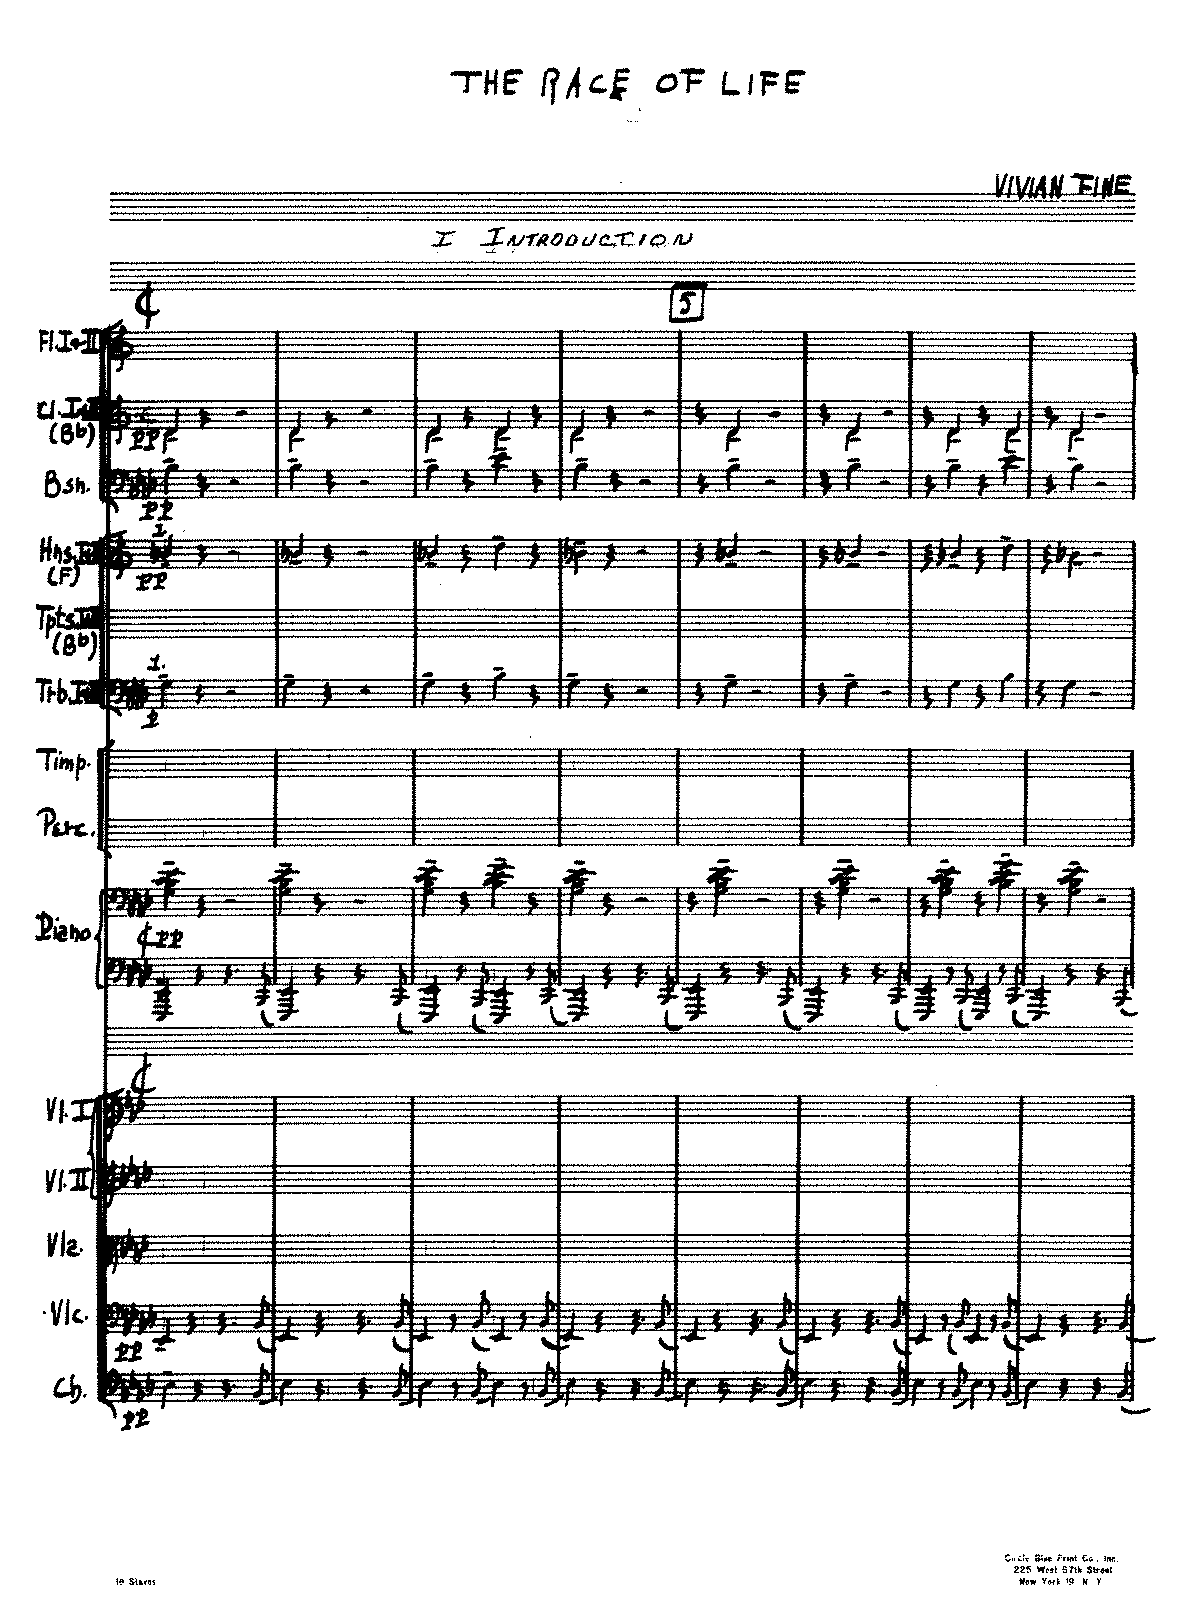 PMLP397606-Race of Life Orchestral Score.pdf